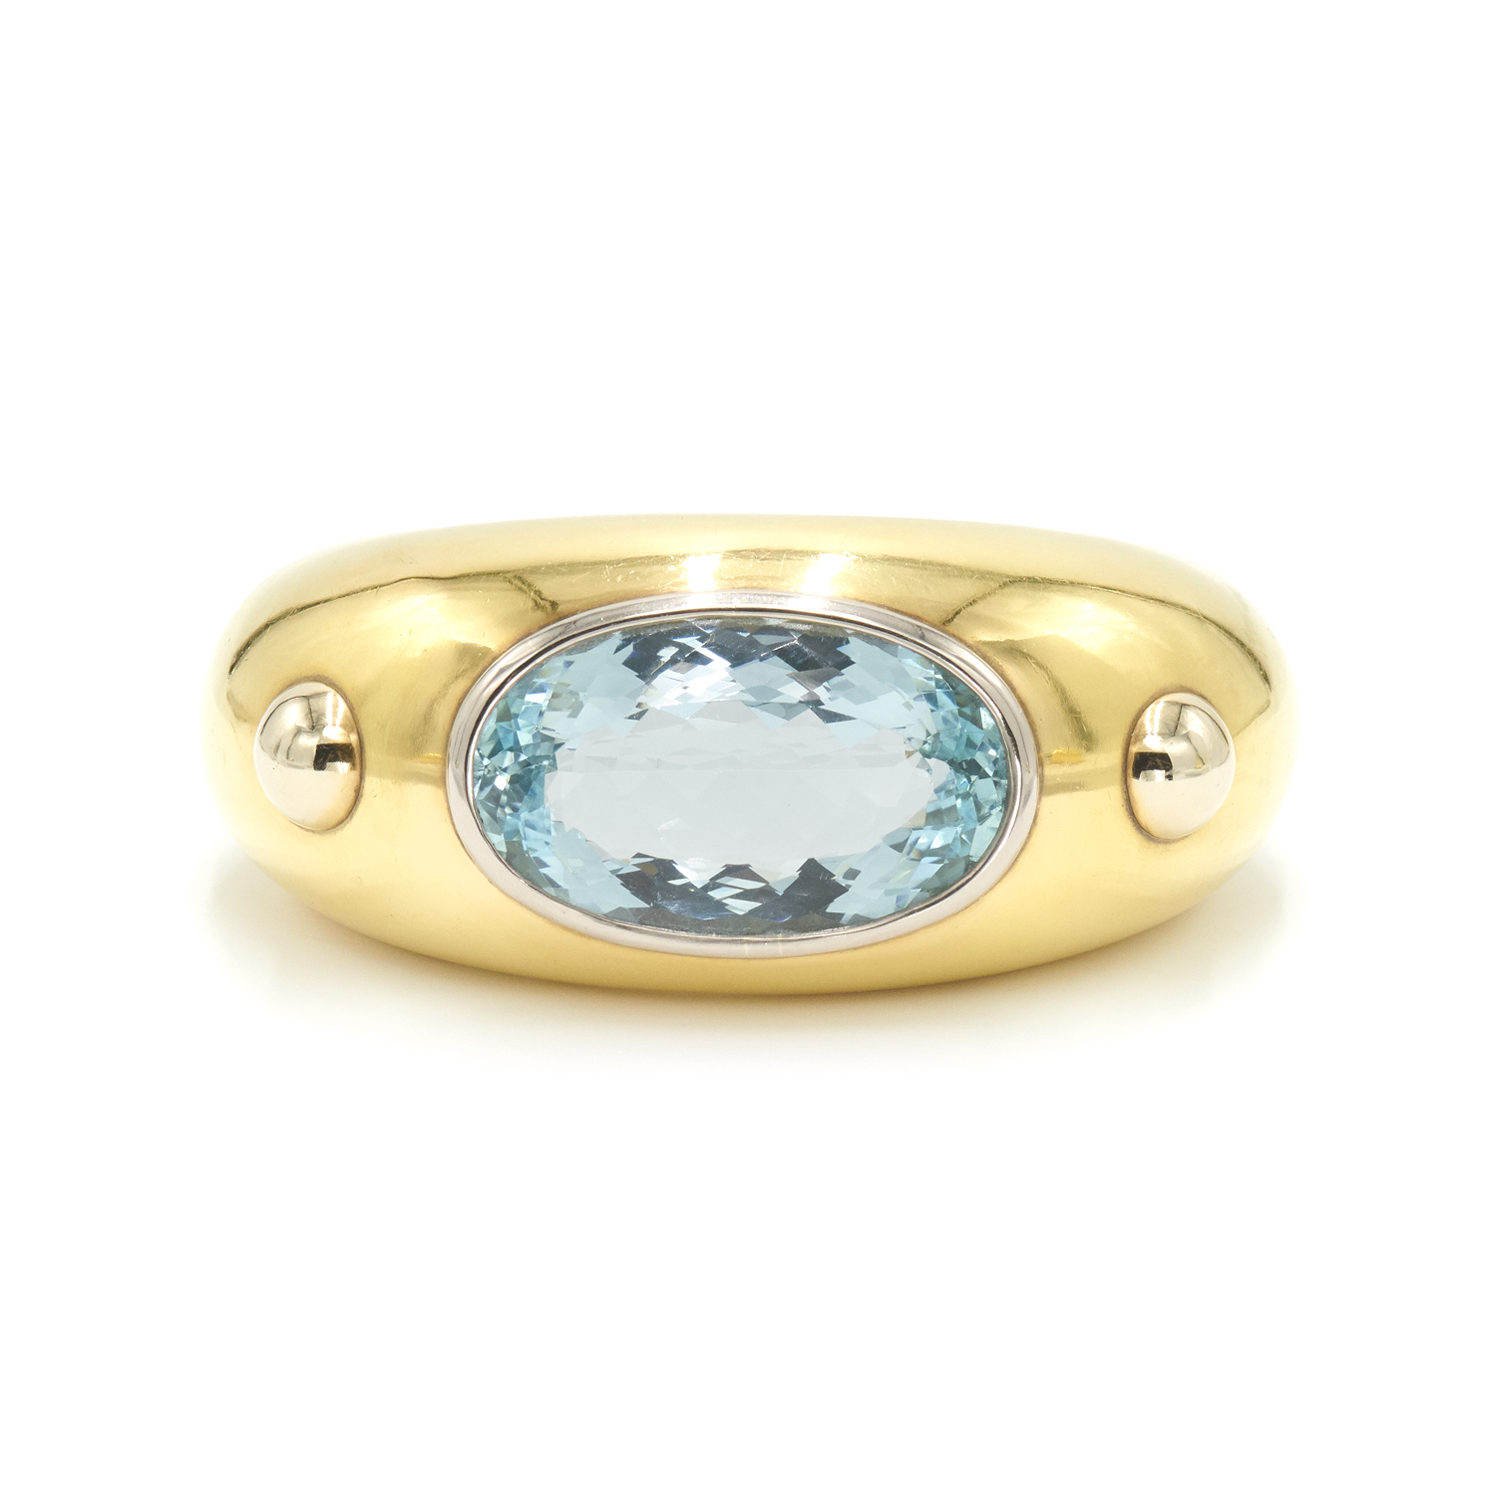 Yellow Gold and Aquamarine Cuff Bracelet by René Boivin Style B-28031-FL-0-0